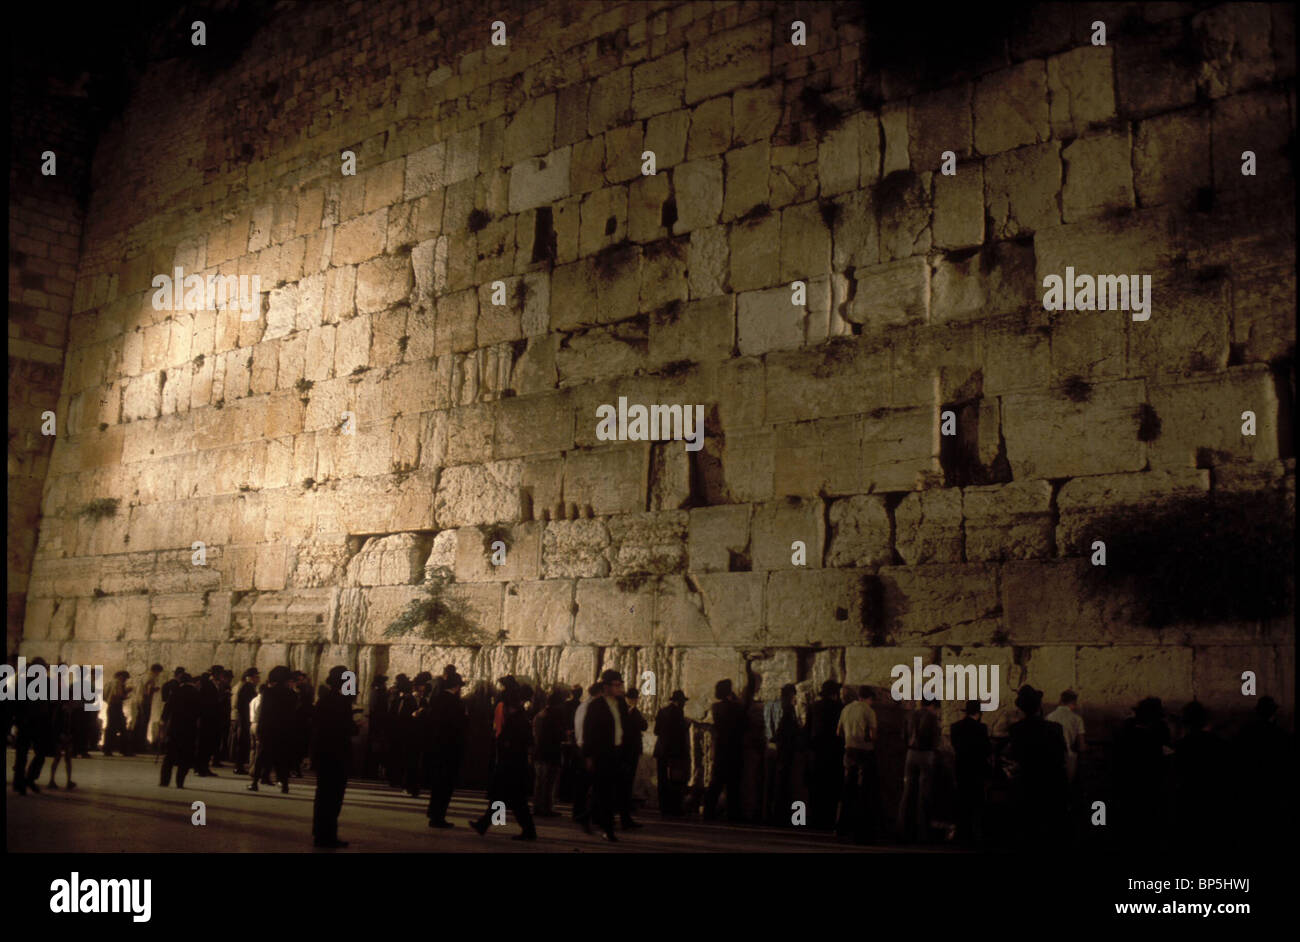 3363. PRAYING AT THE WESTERN WALL GOES ON UNINTERUPTED DAY AND NIGHT - Stock Image